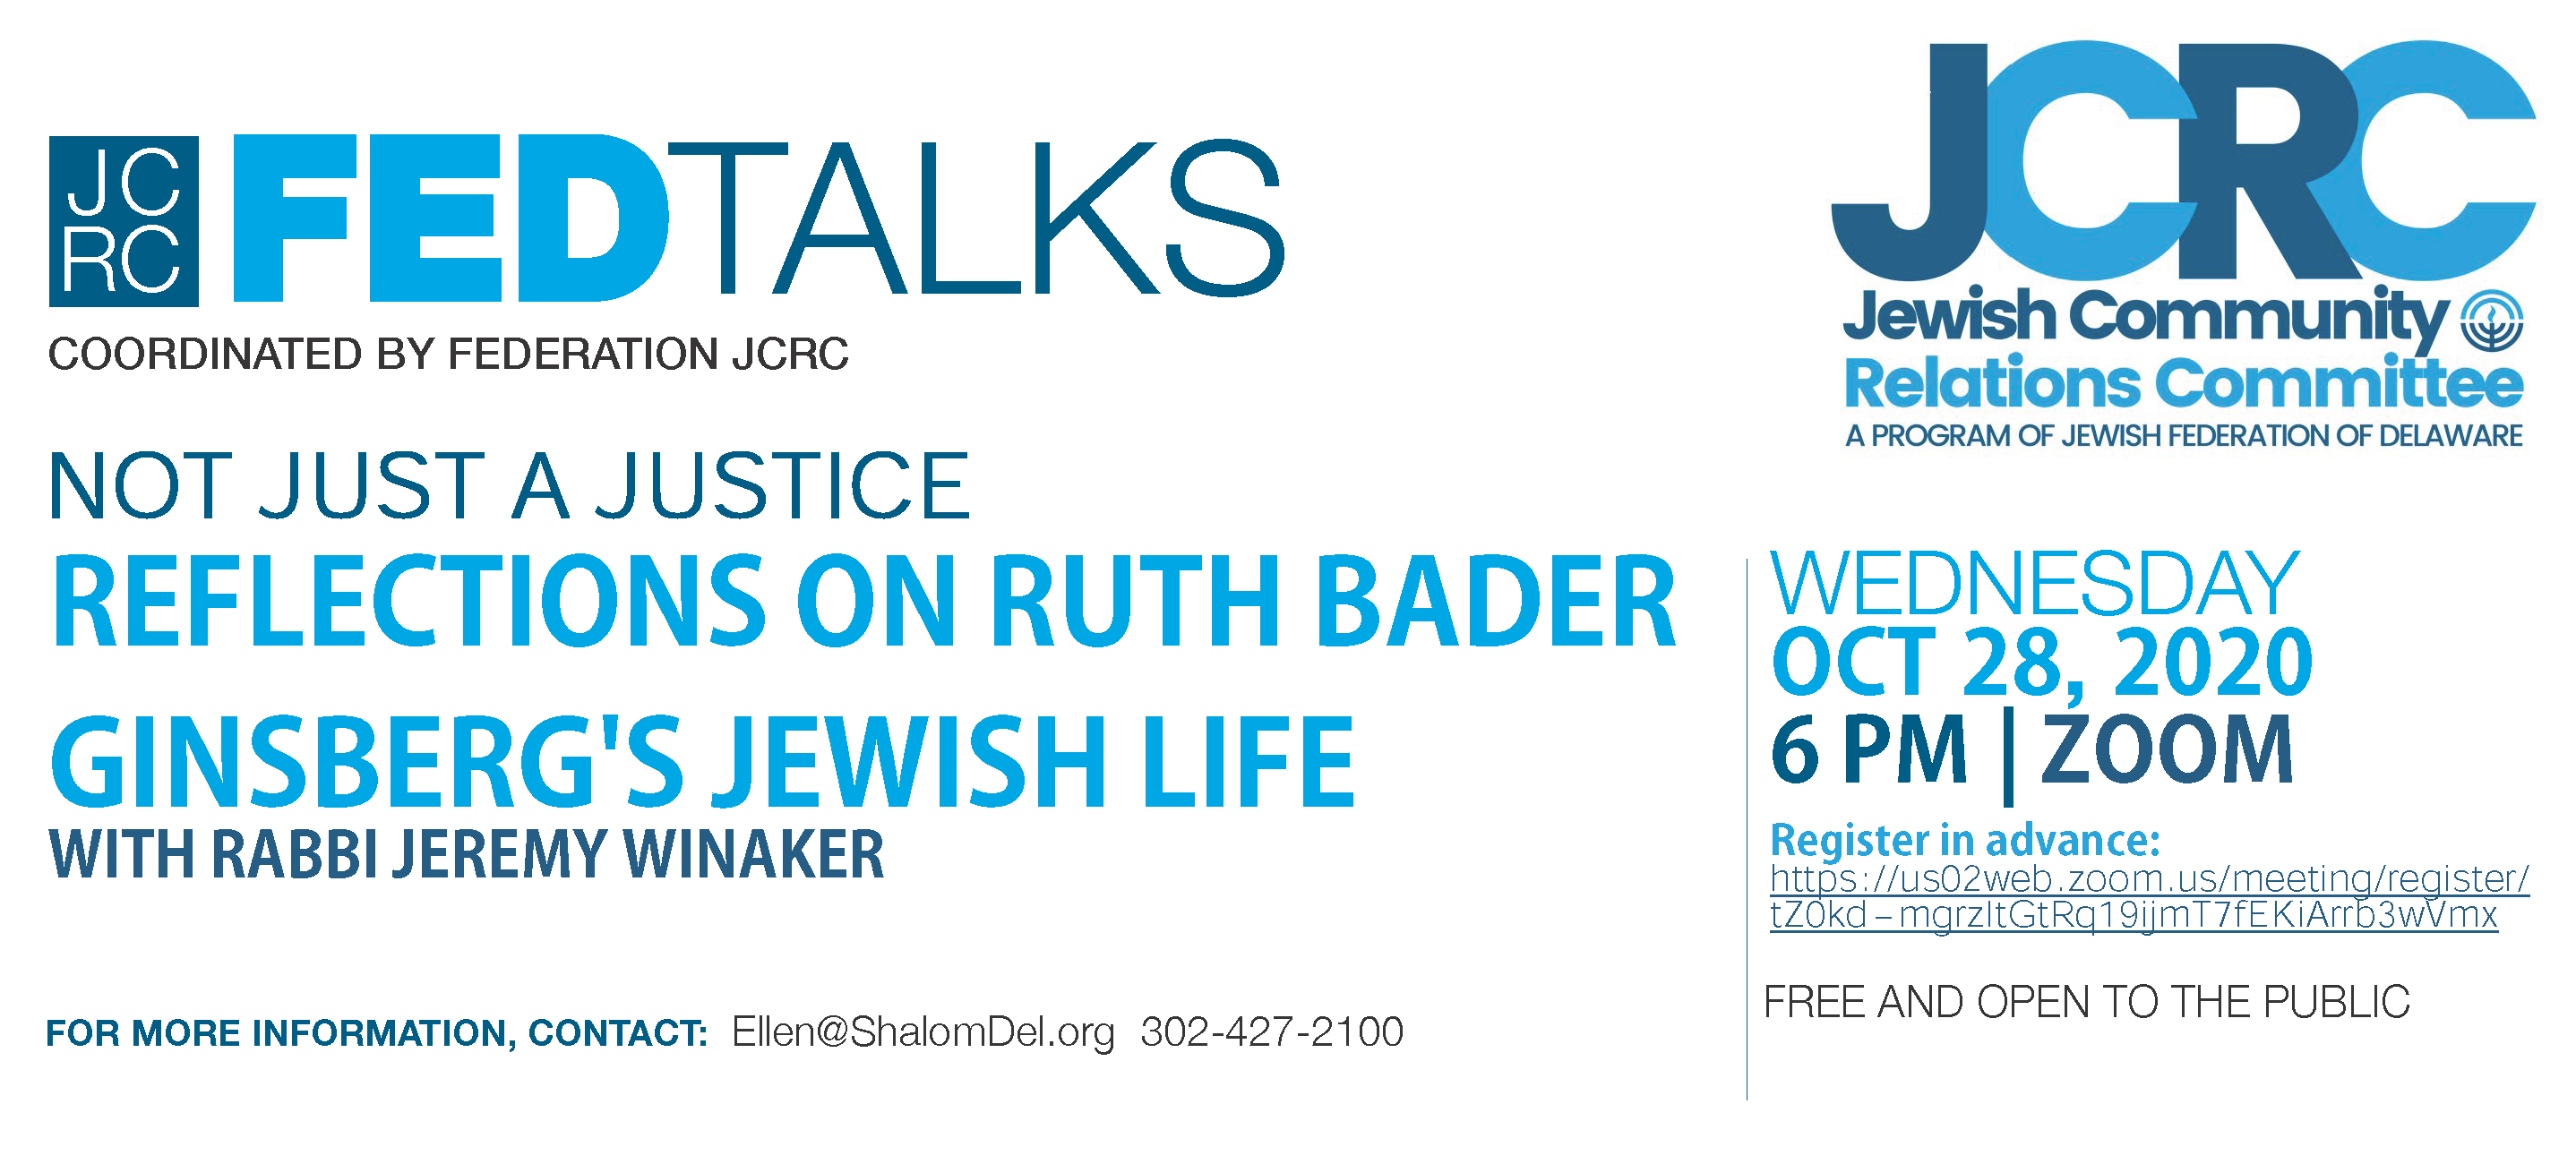 Not Just a Justice: Reflections on RBG's Jewish Life